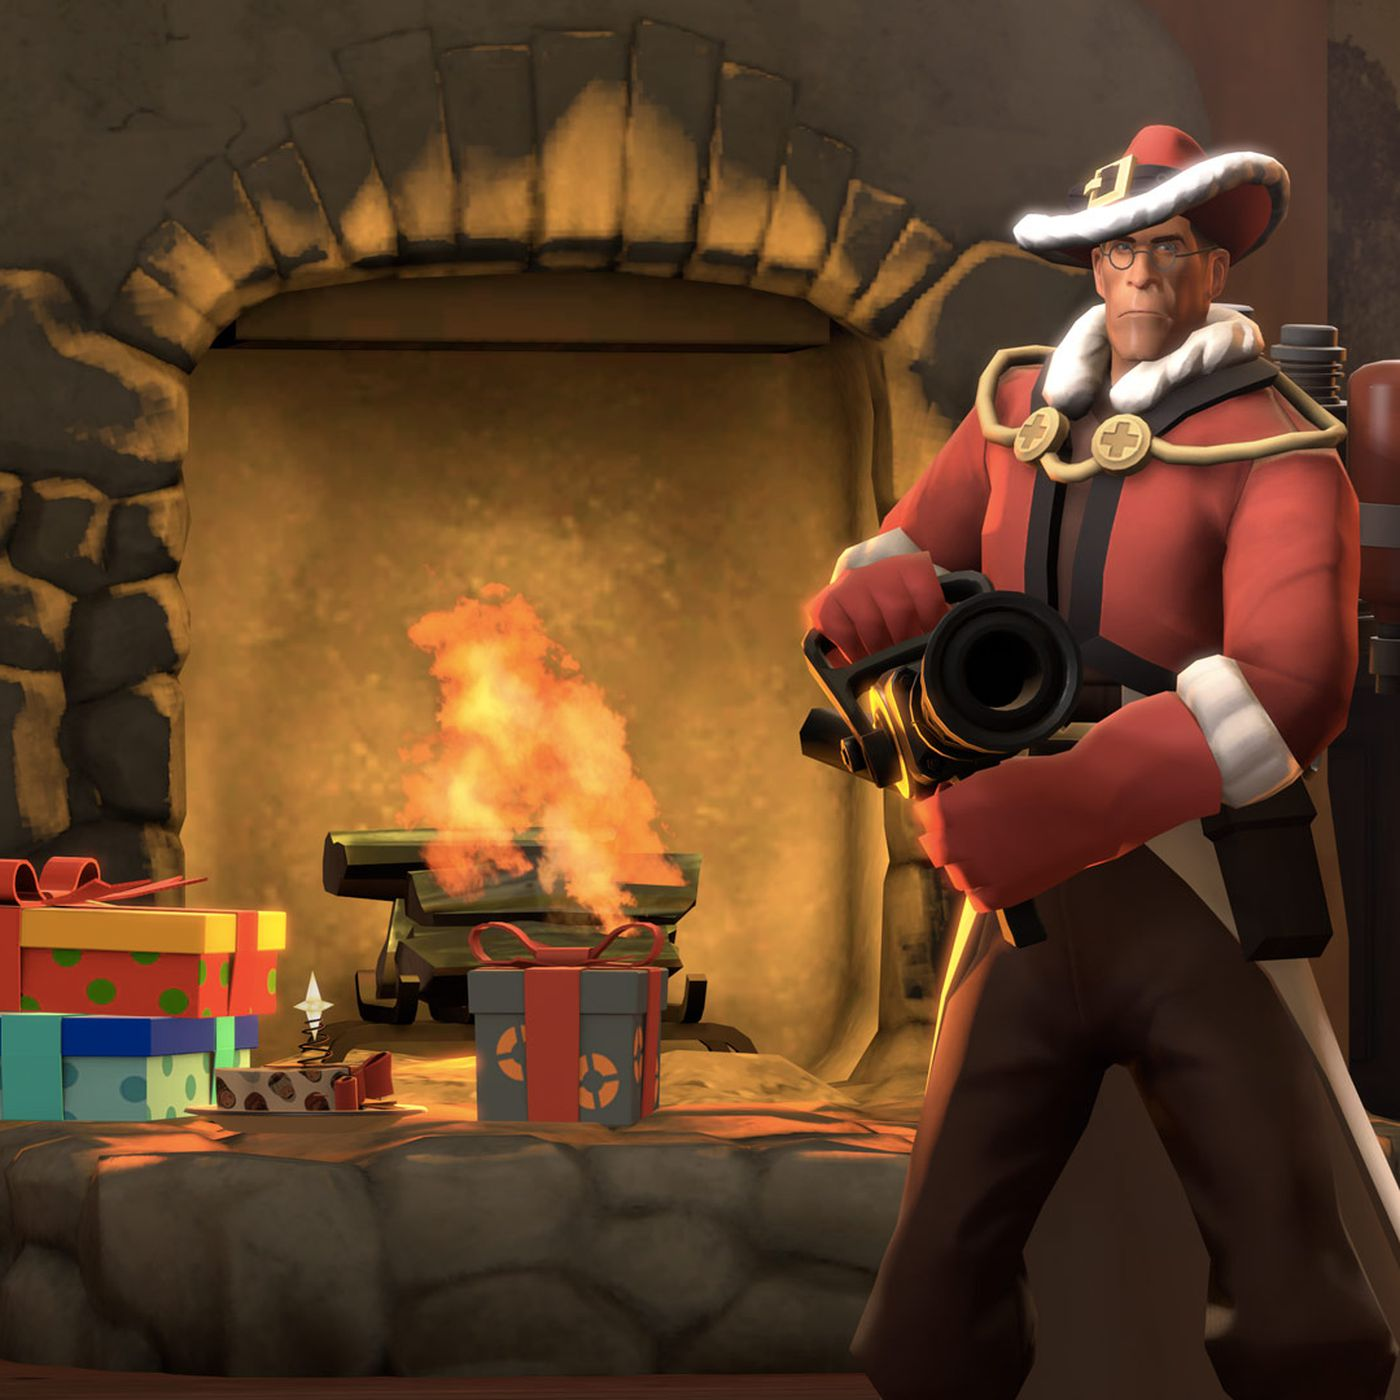 Team Fortress 2 now has grappling hooks, power-ups and a new